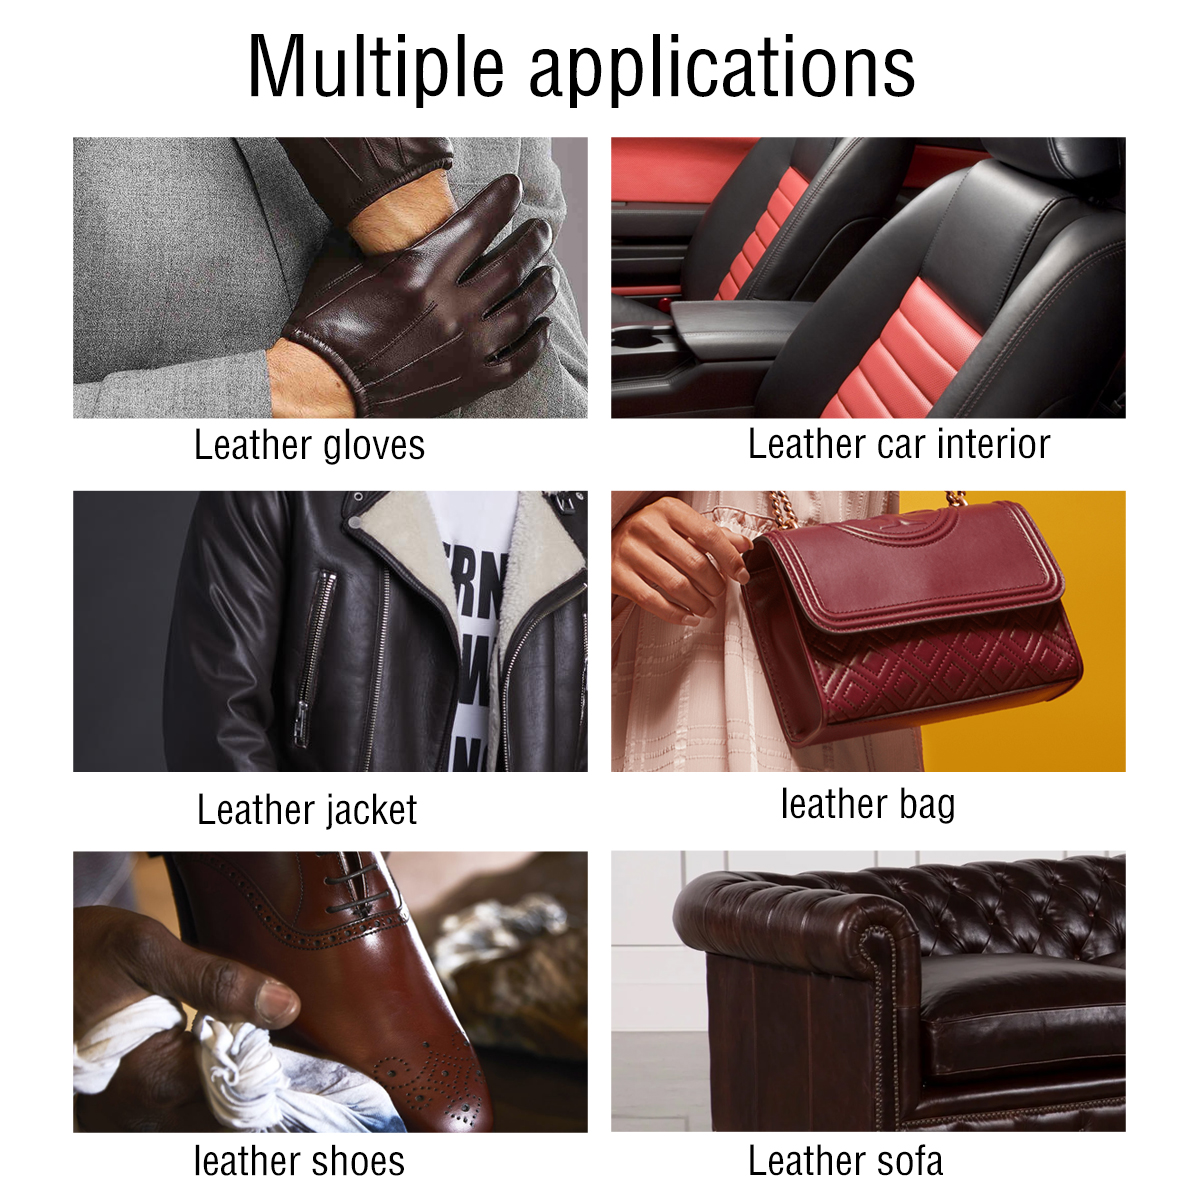 Auto interior Advanced care Leather Vinyl Moisturizing protectant Essence For Car Interiors Furniture Care restores protects in Leather Upholstery Cleaner from Automobiles Motorcycles